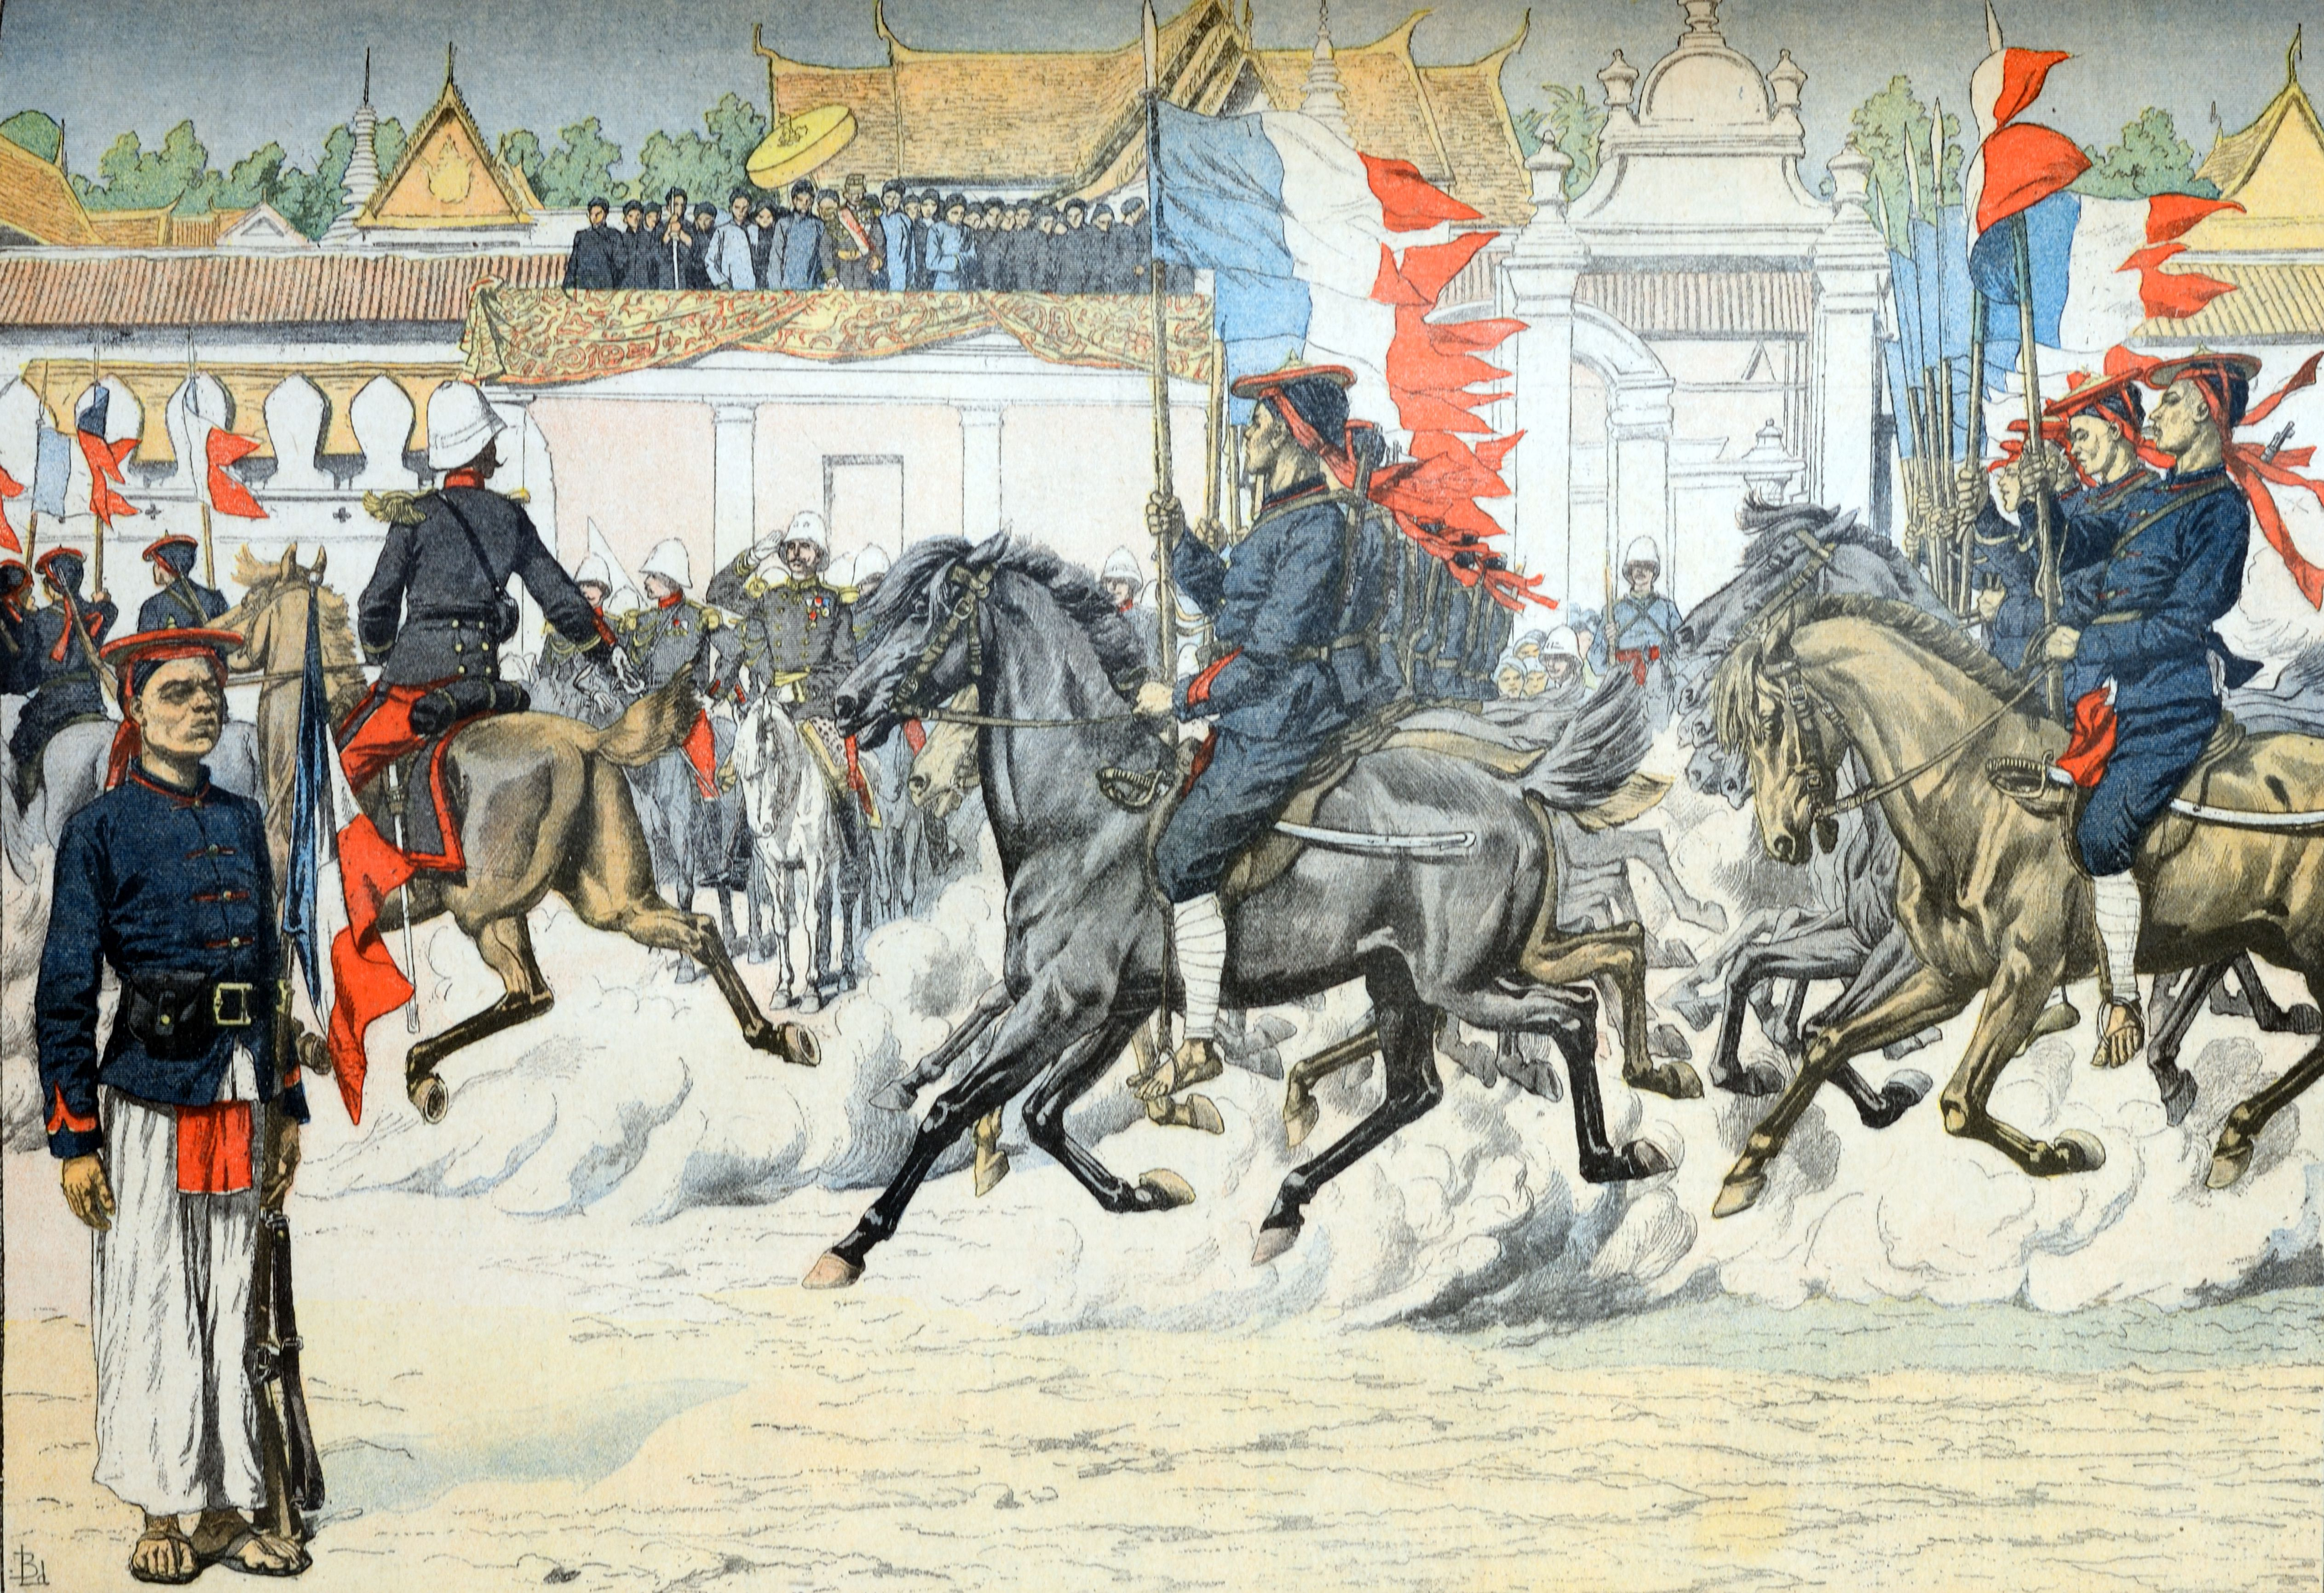 Artist rendering of a procession of indigenous cavalry in French Indo-China (Vietnam).